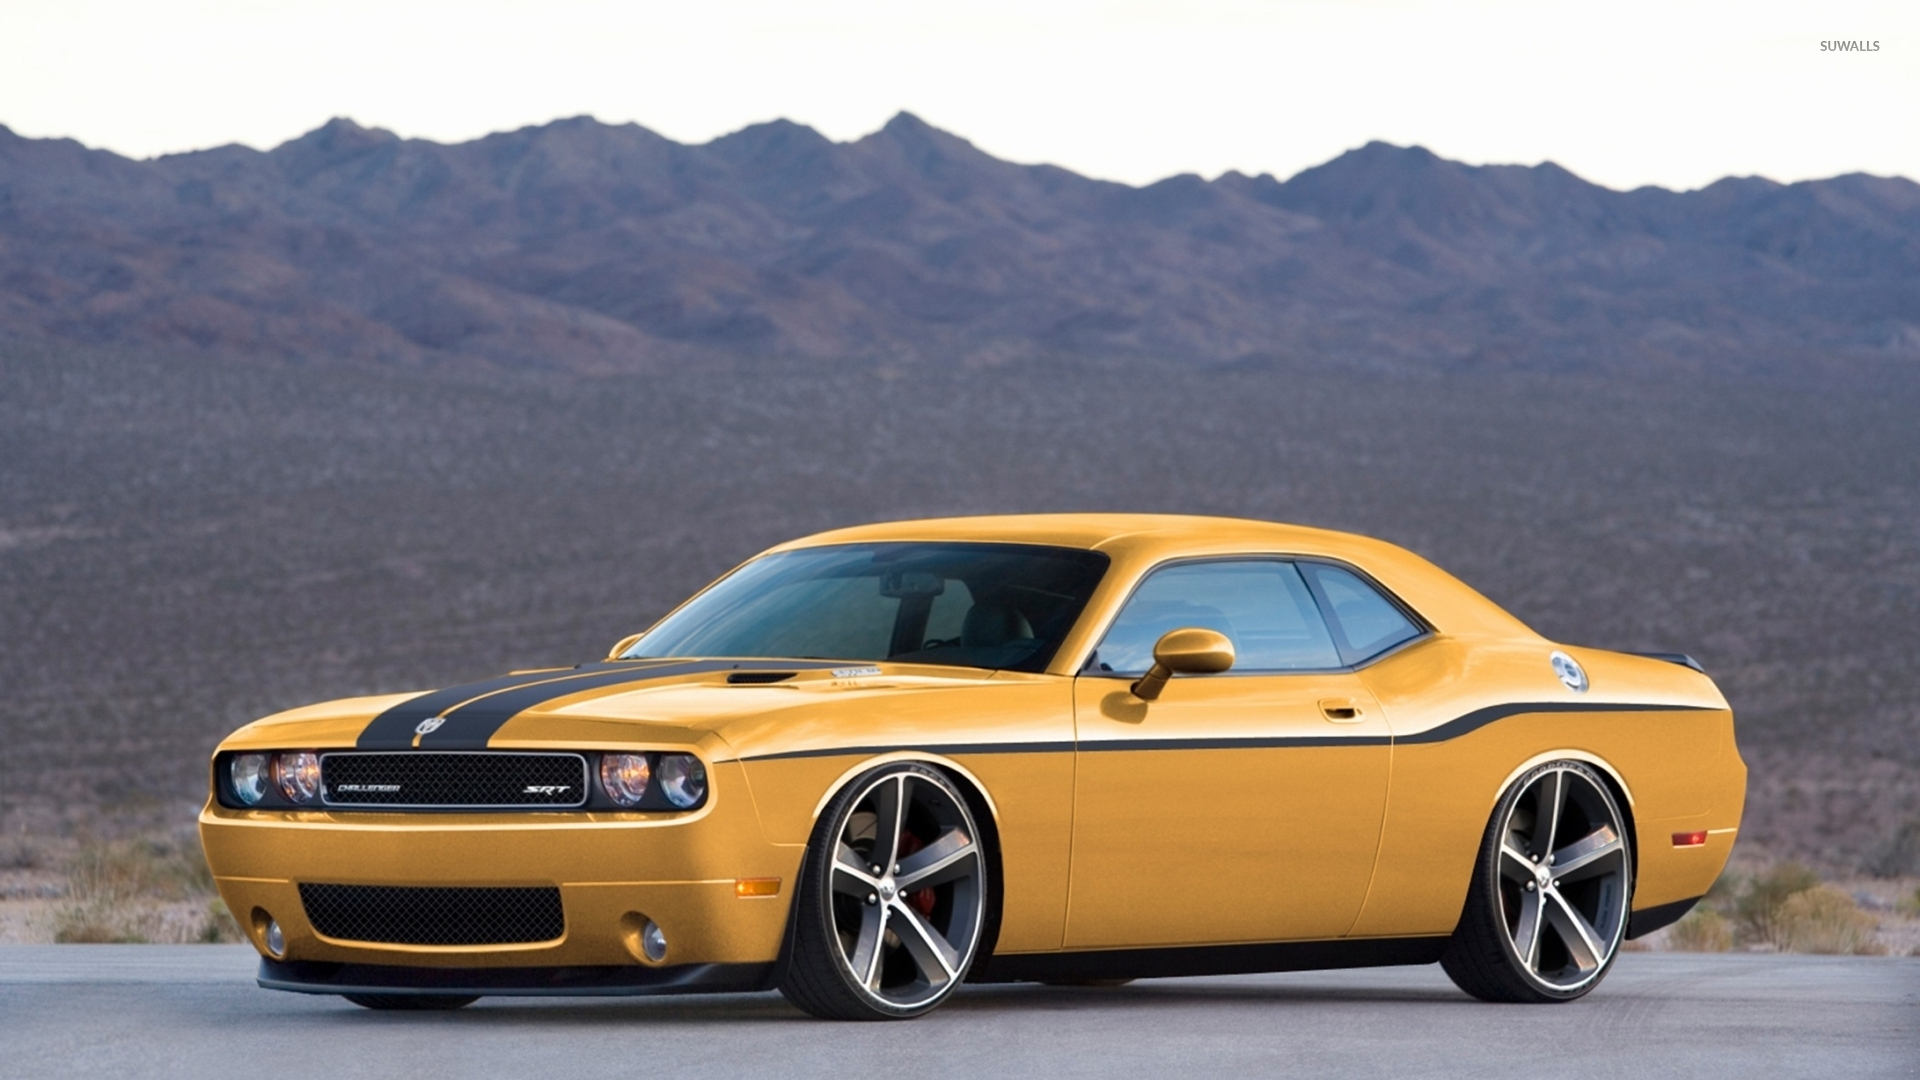 2015 dodge challenger srt wallpaper car wallpapers 33542. Black Bedroom Furniture Sets. Home Design Ideas